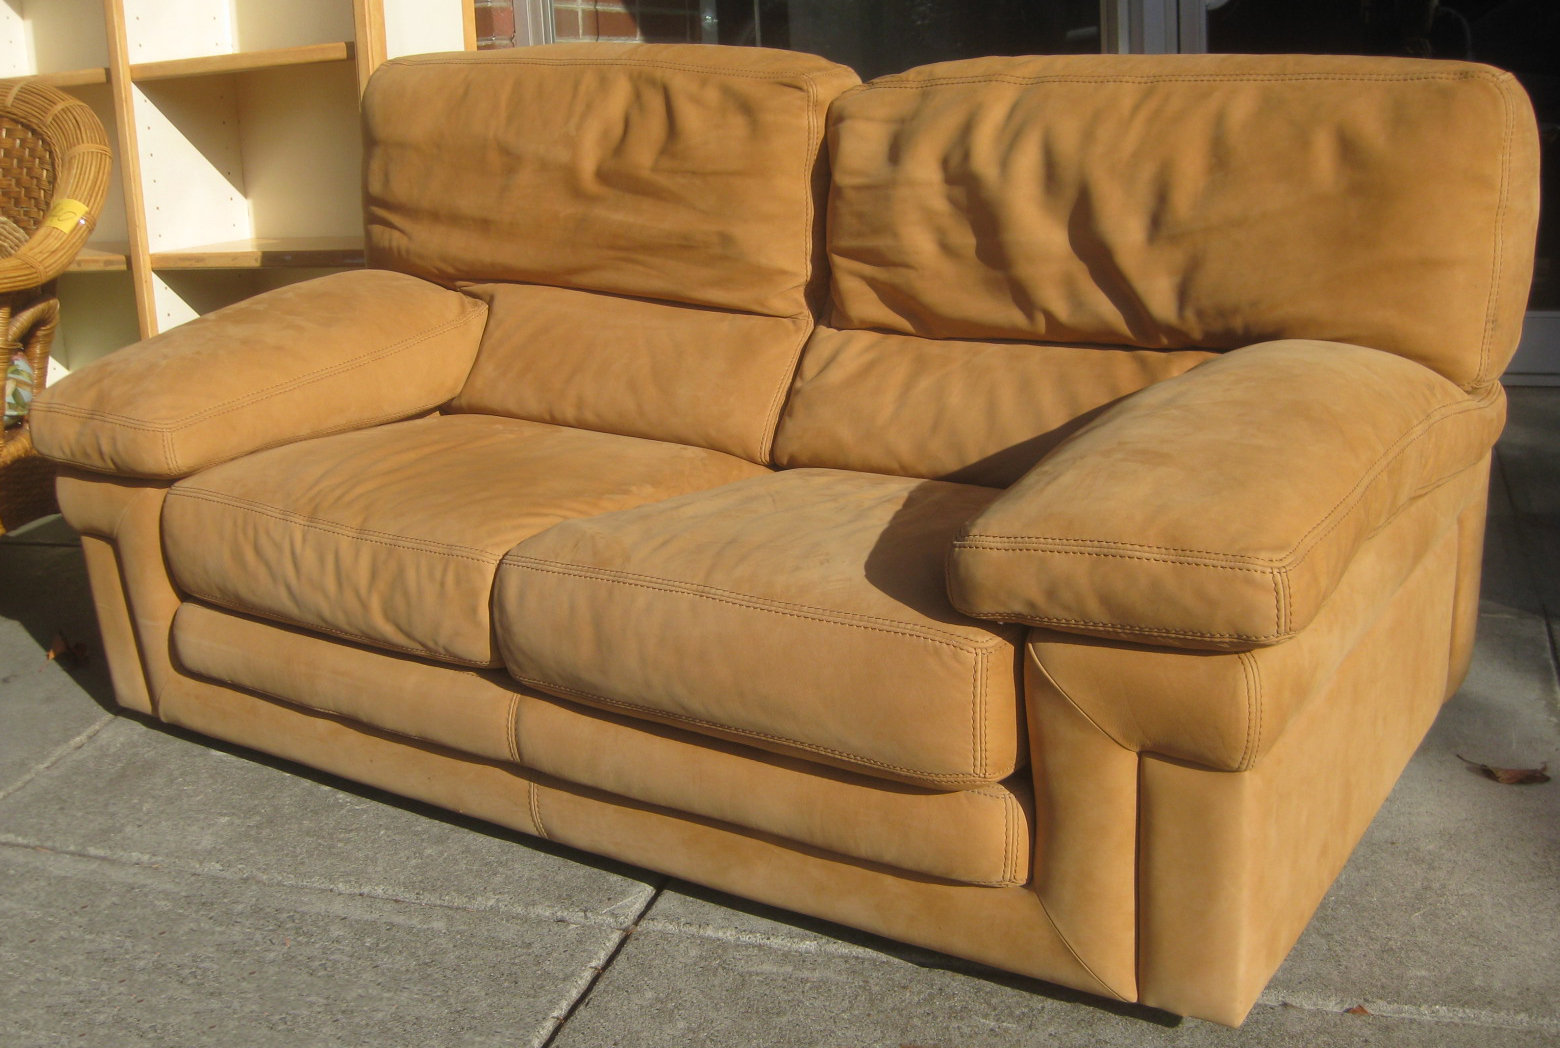 Uhuru furniture collectibles sold suede sofas for Suede furniture